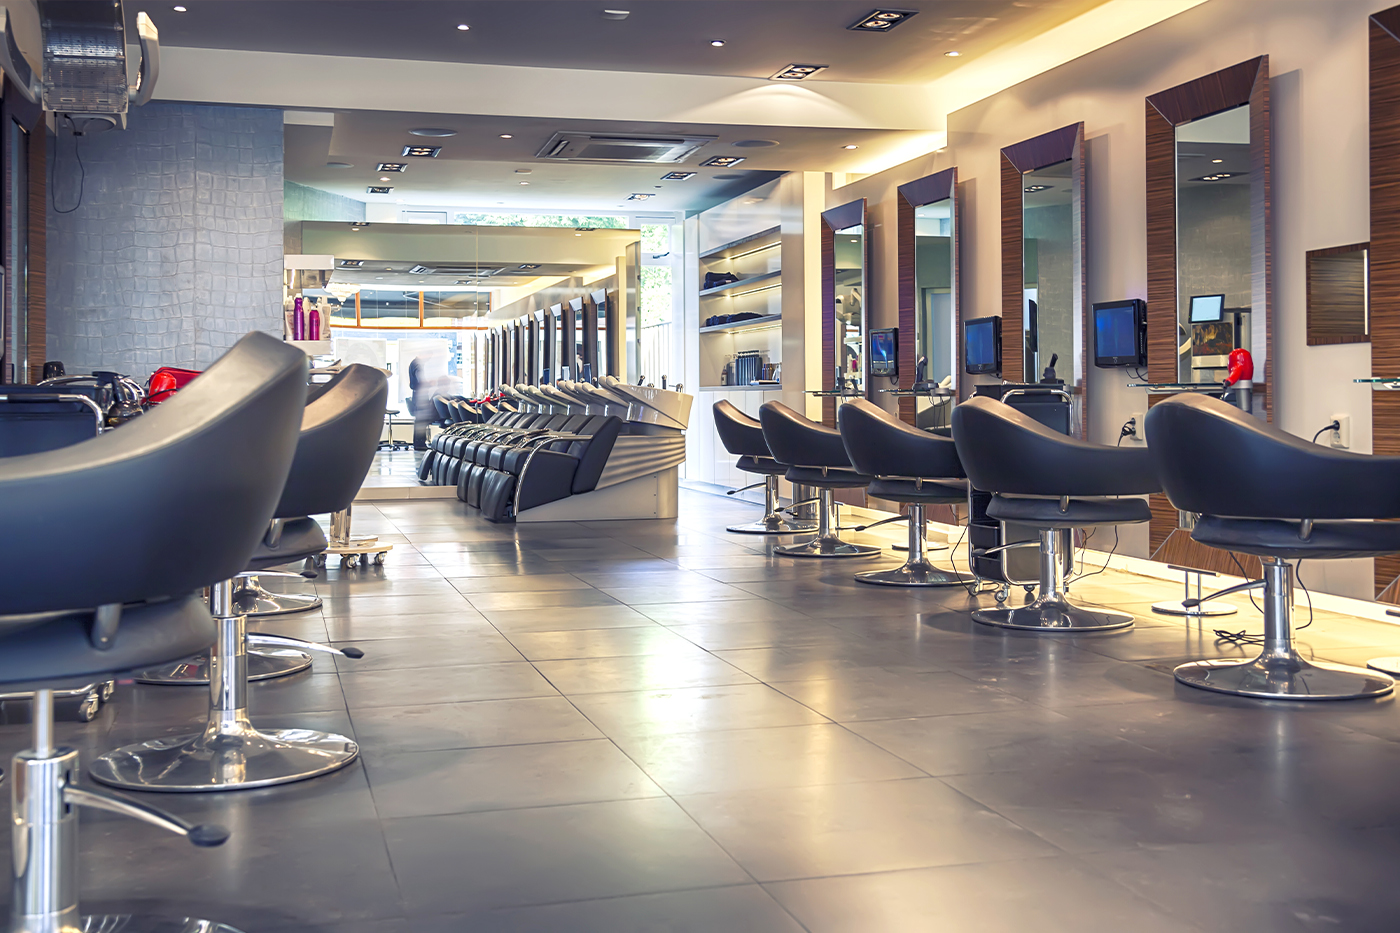 Enrich Salons hold back expansion plans